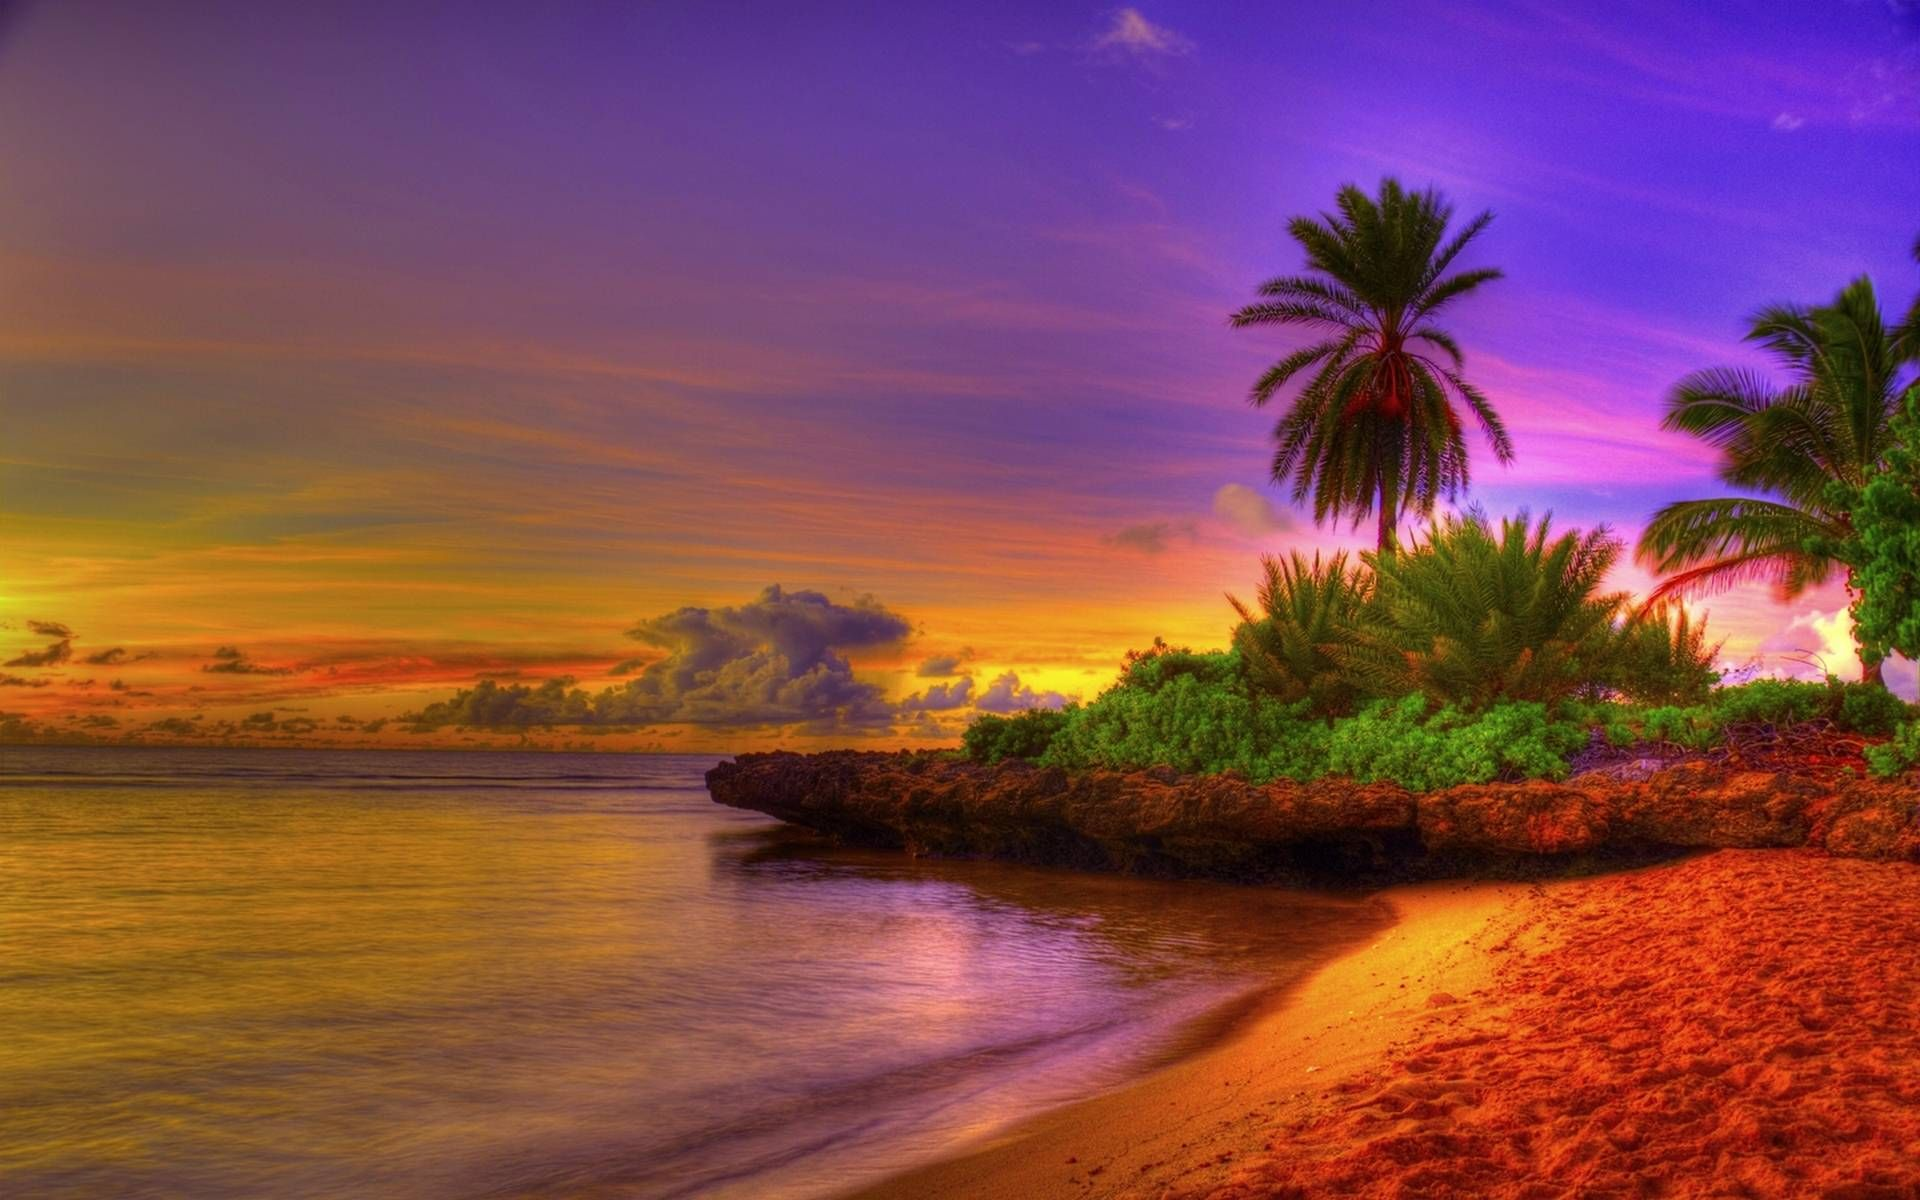 Tropical Sunrise Wallpaper Pictures 5 HD Wallpapers